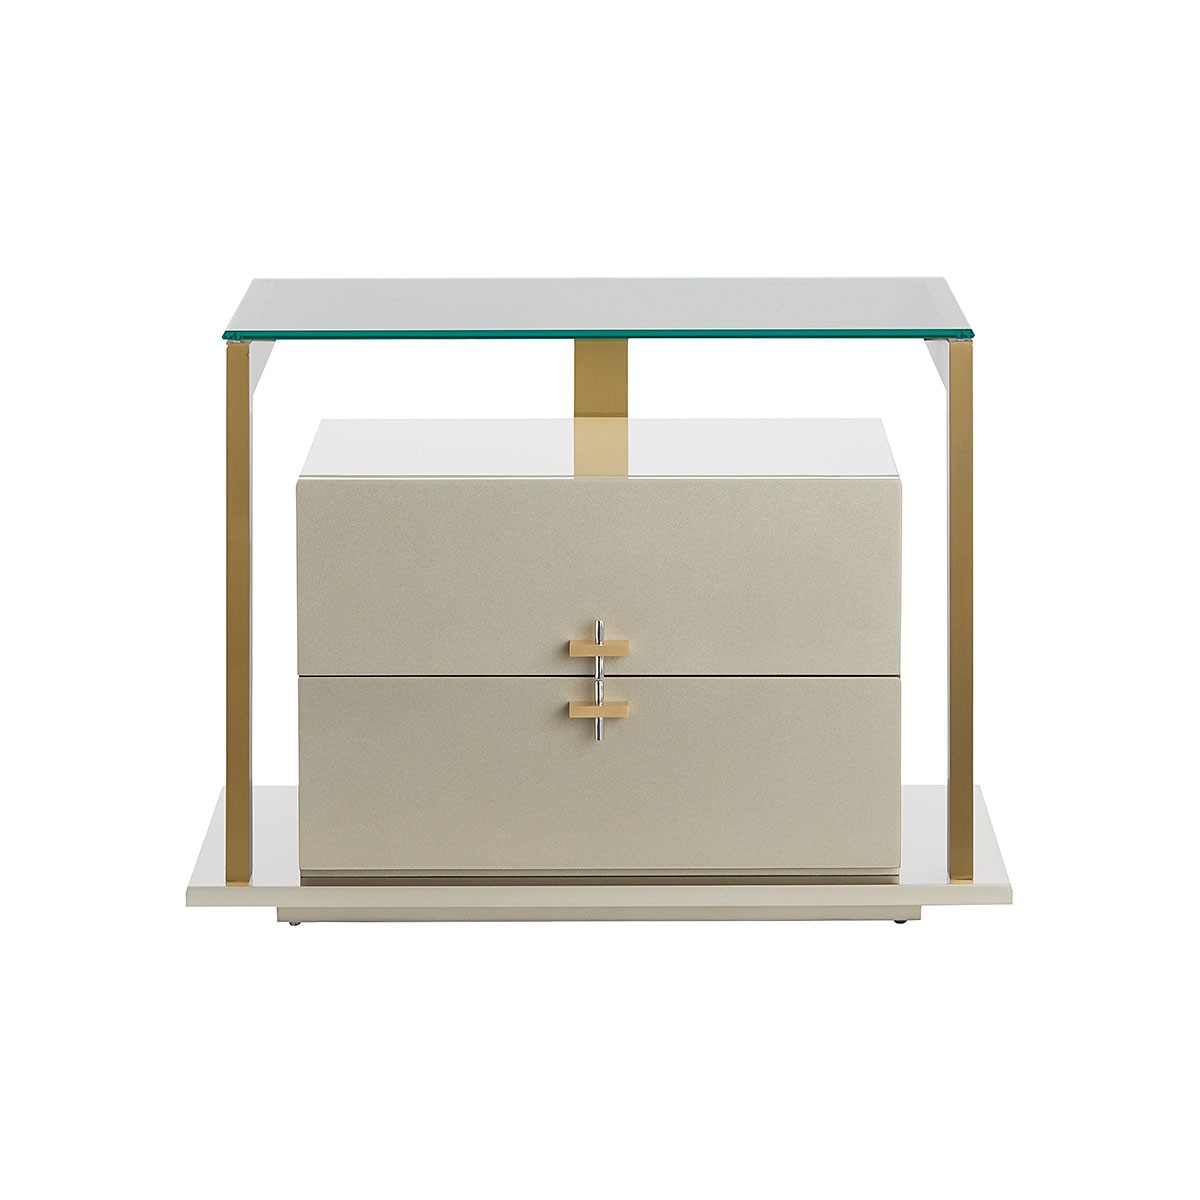 The Quimera Bedside Table